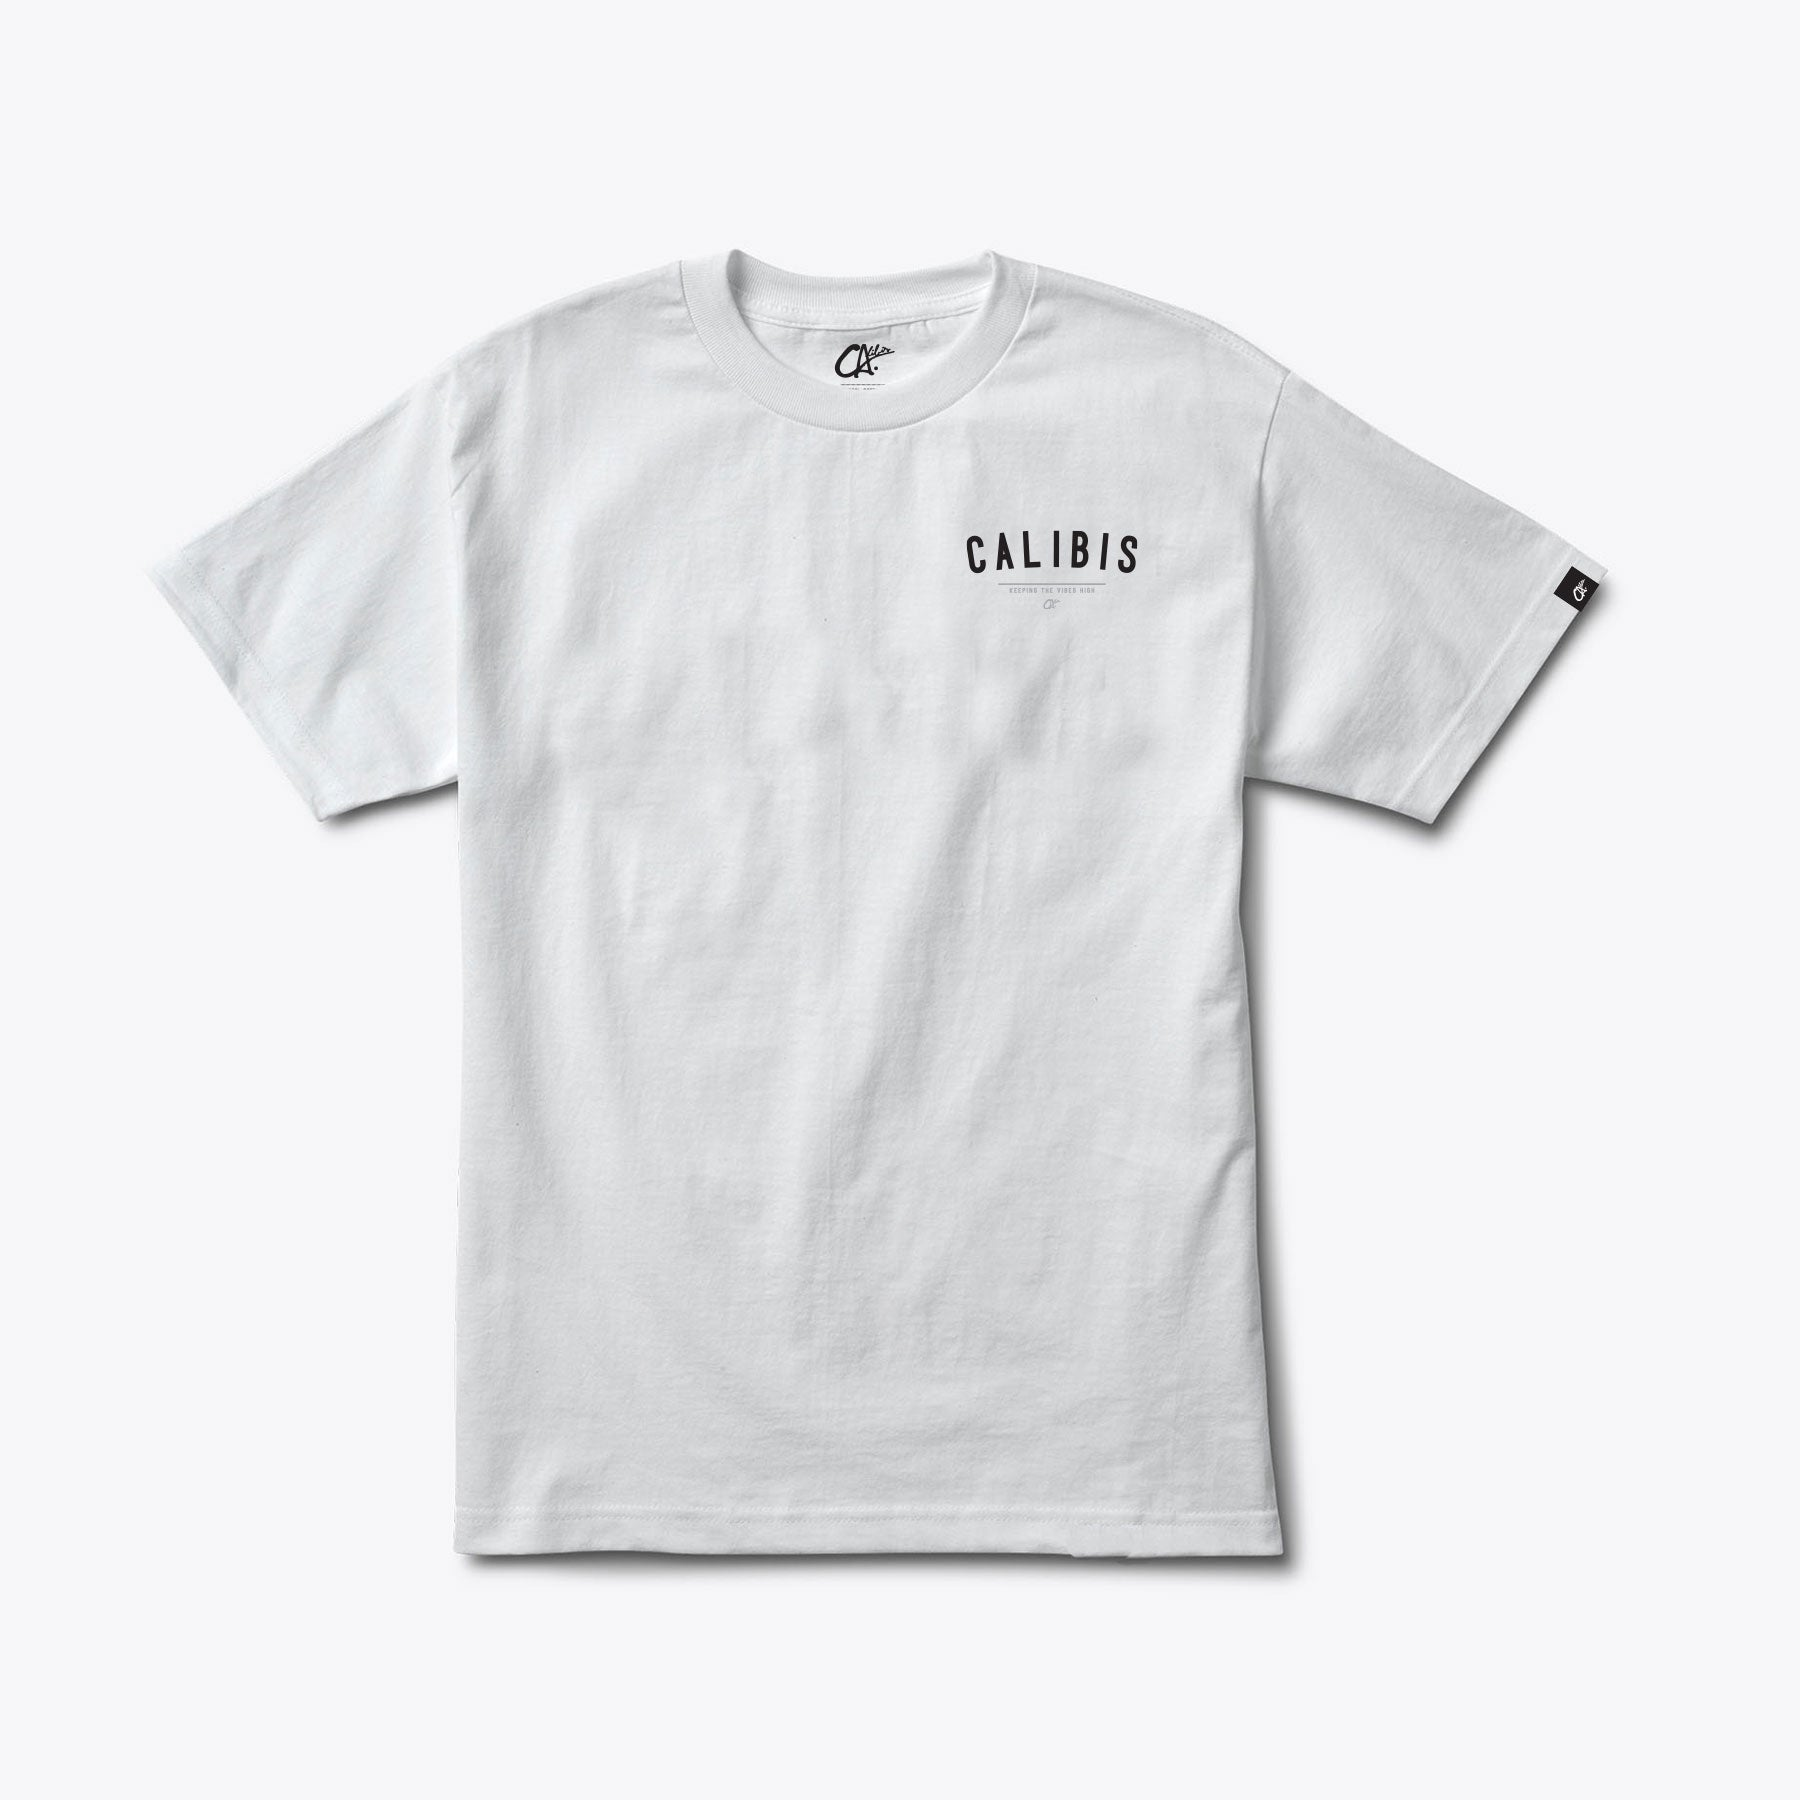 Global Tee by Calibis